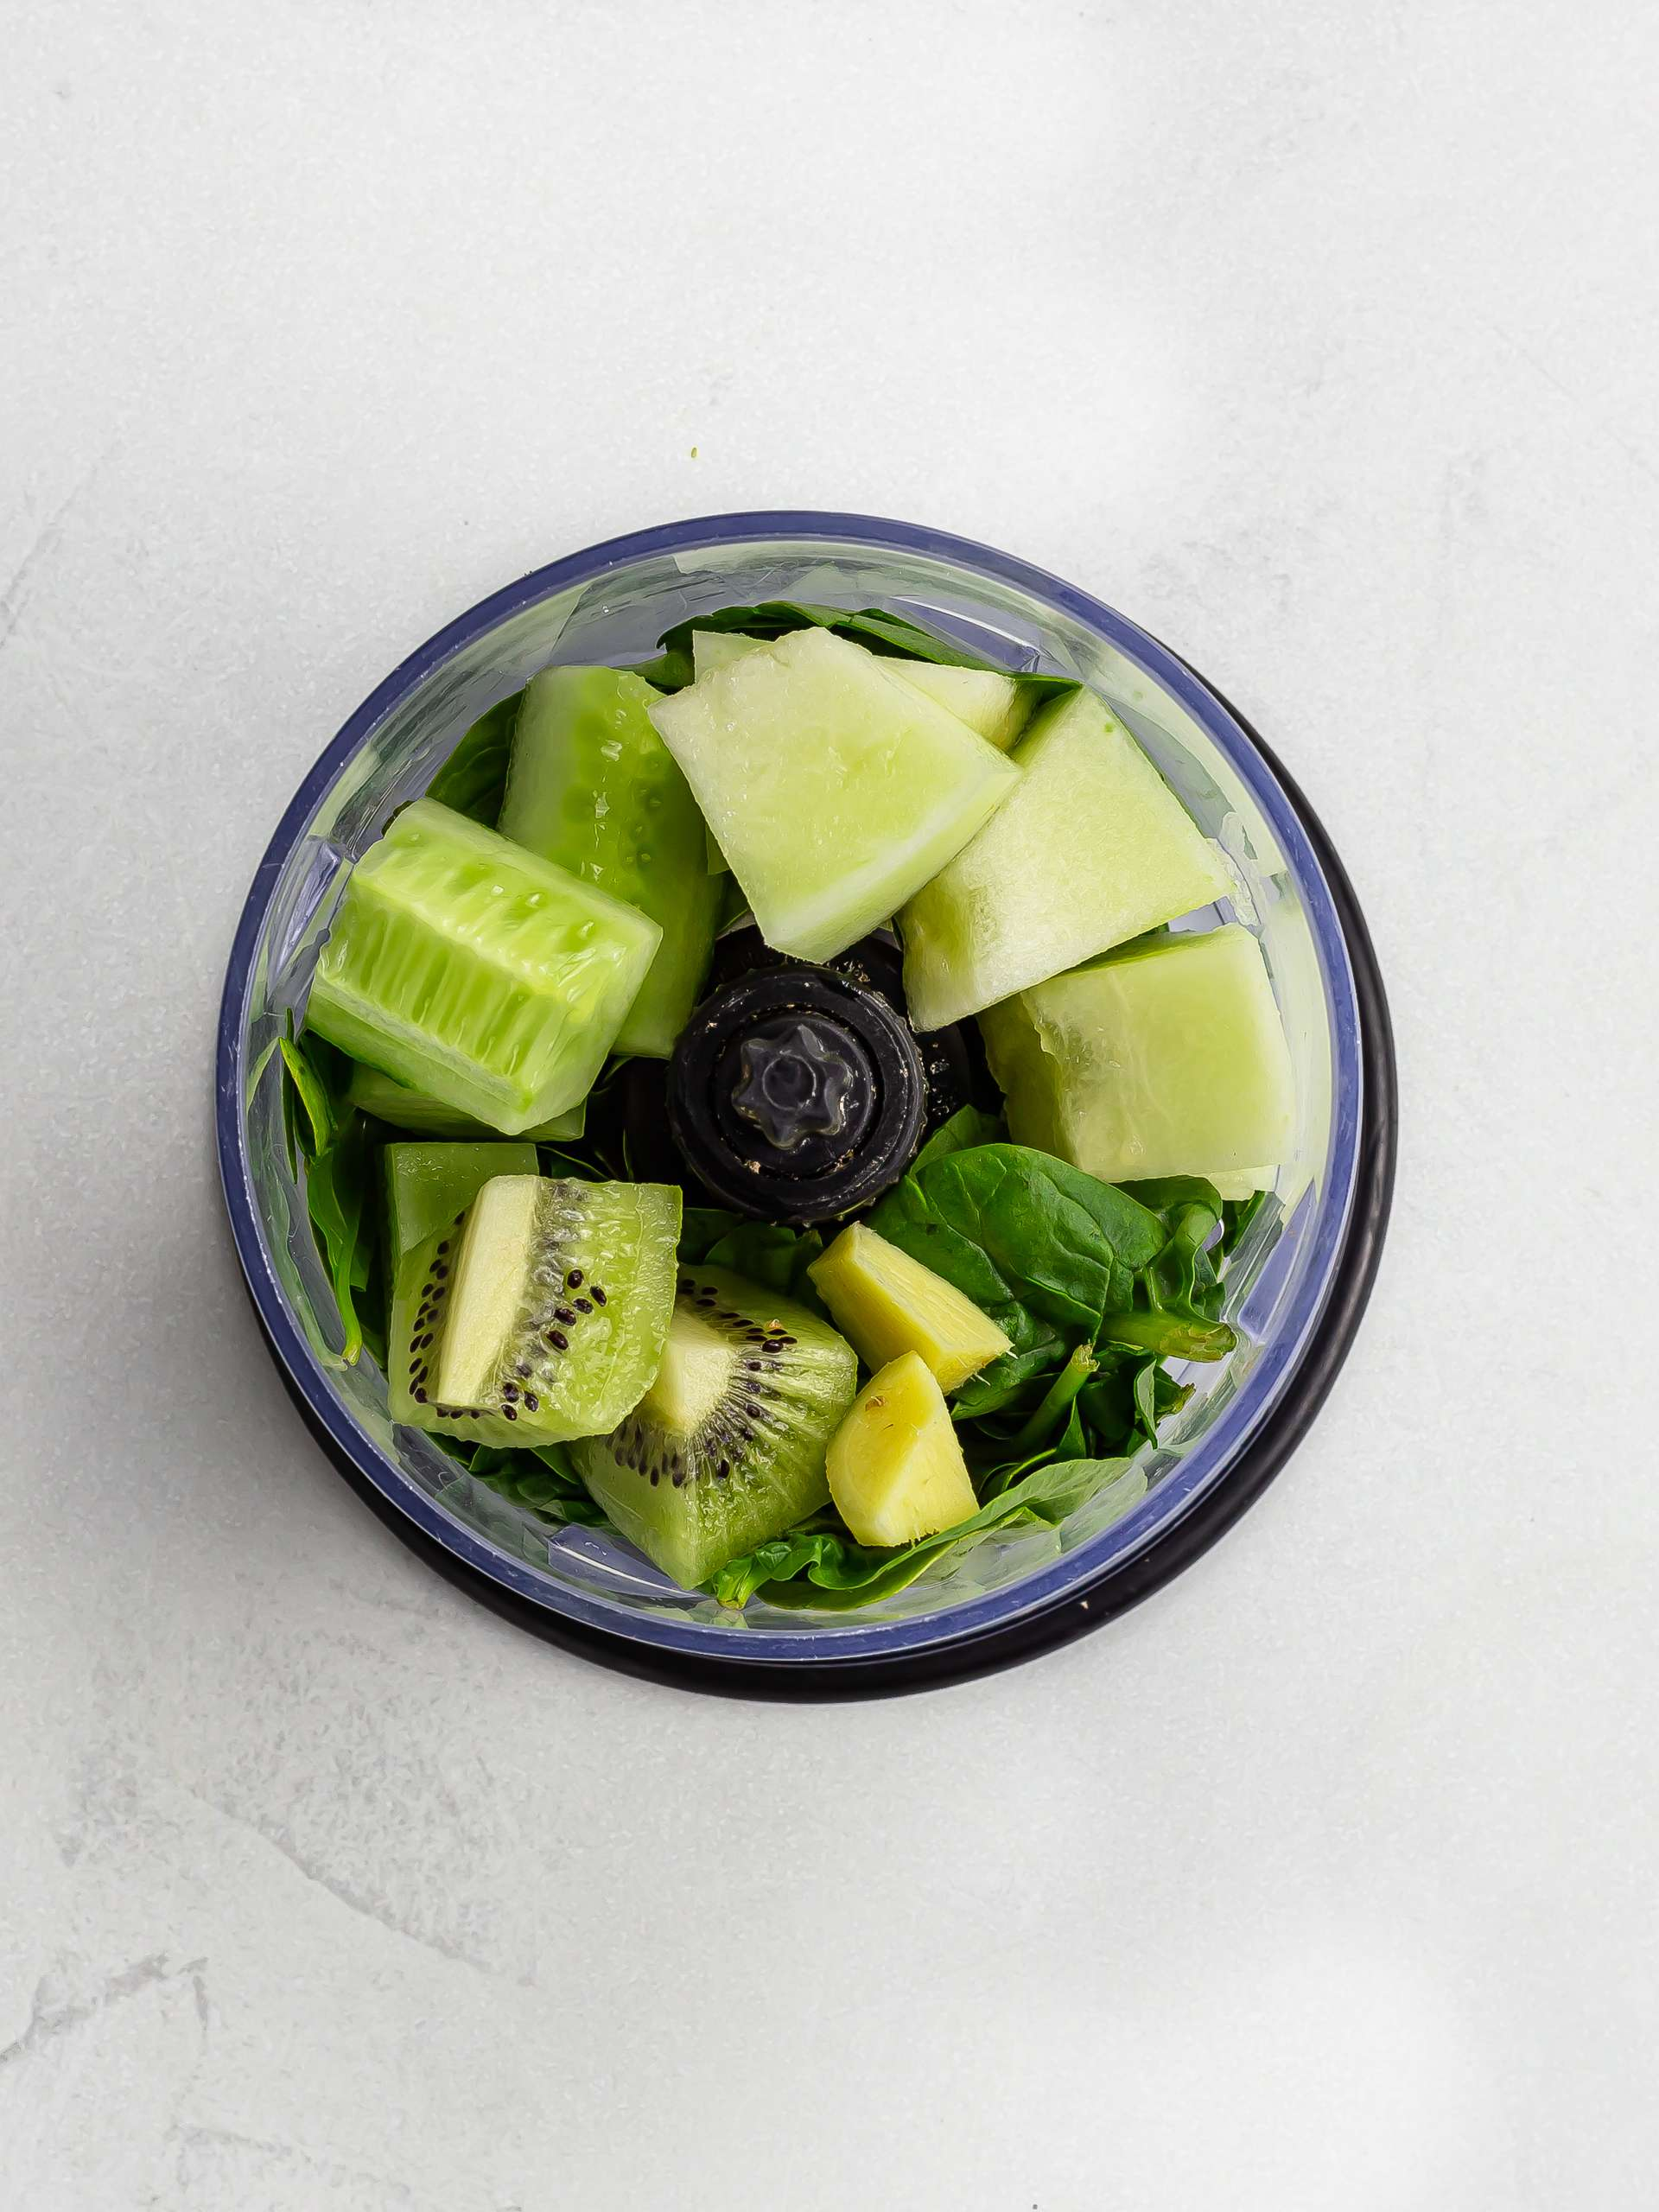 spinach cucumber kiwi and melon in a blender